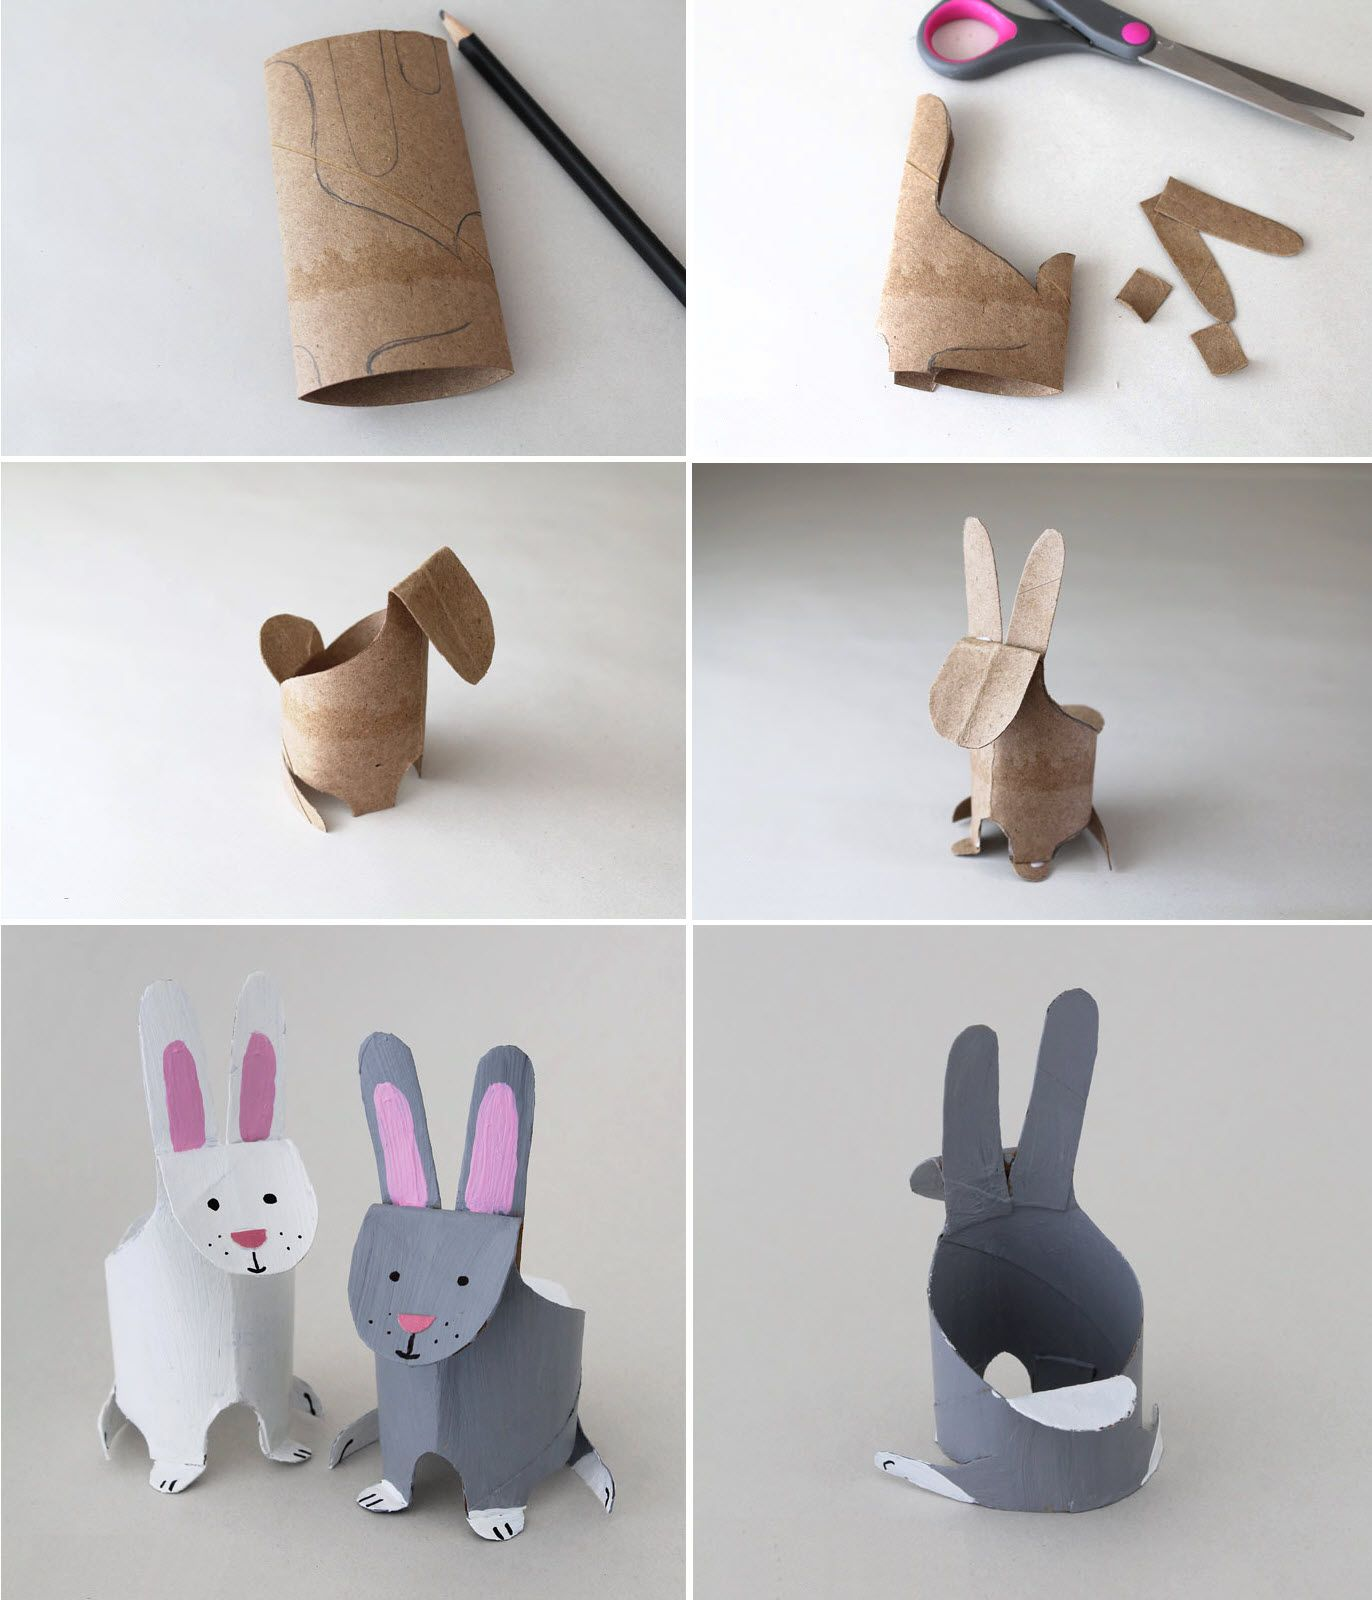 fabrication lapin en carton activit s gps pinterest lapin mod les imprimables et bricolage. Black Bedroom Furniture Sets. Home Design Ideas